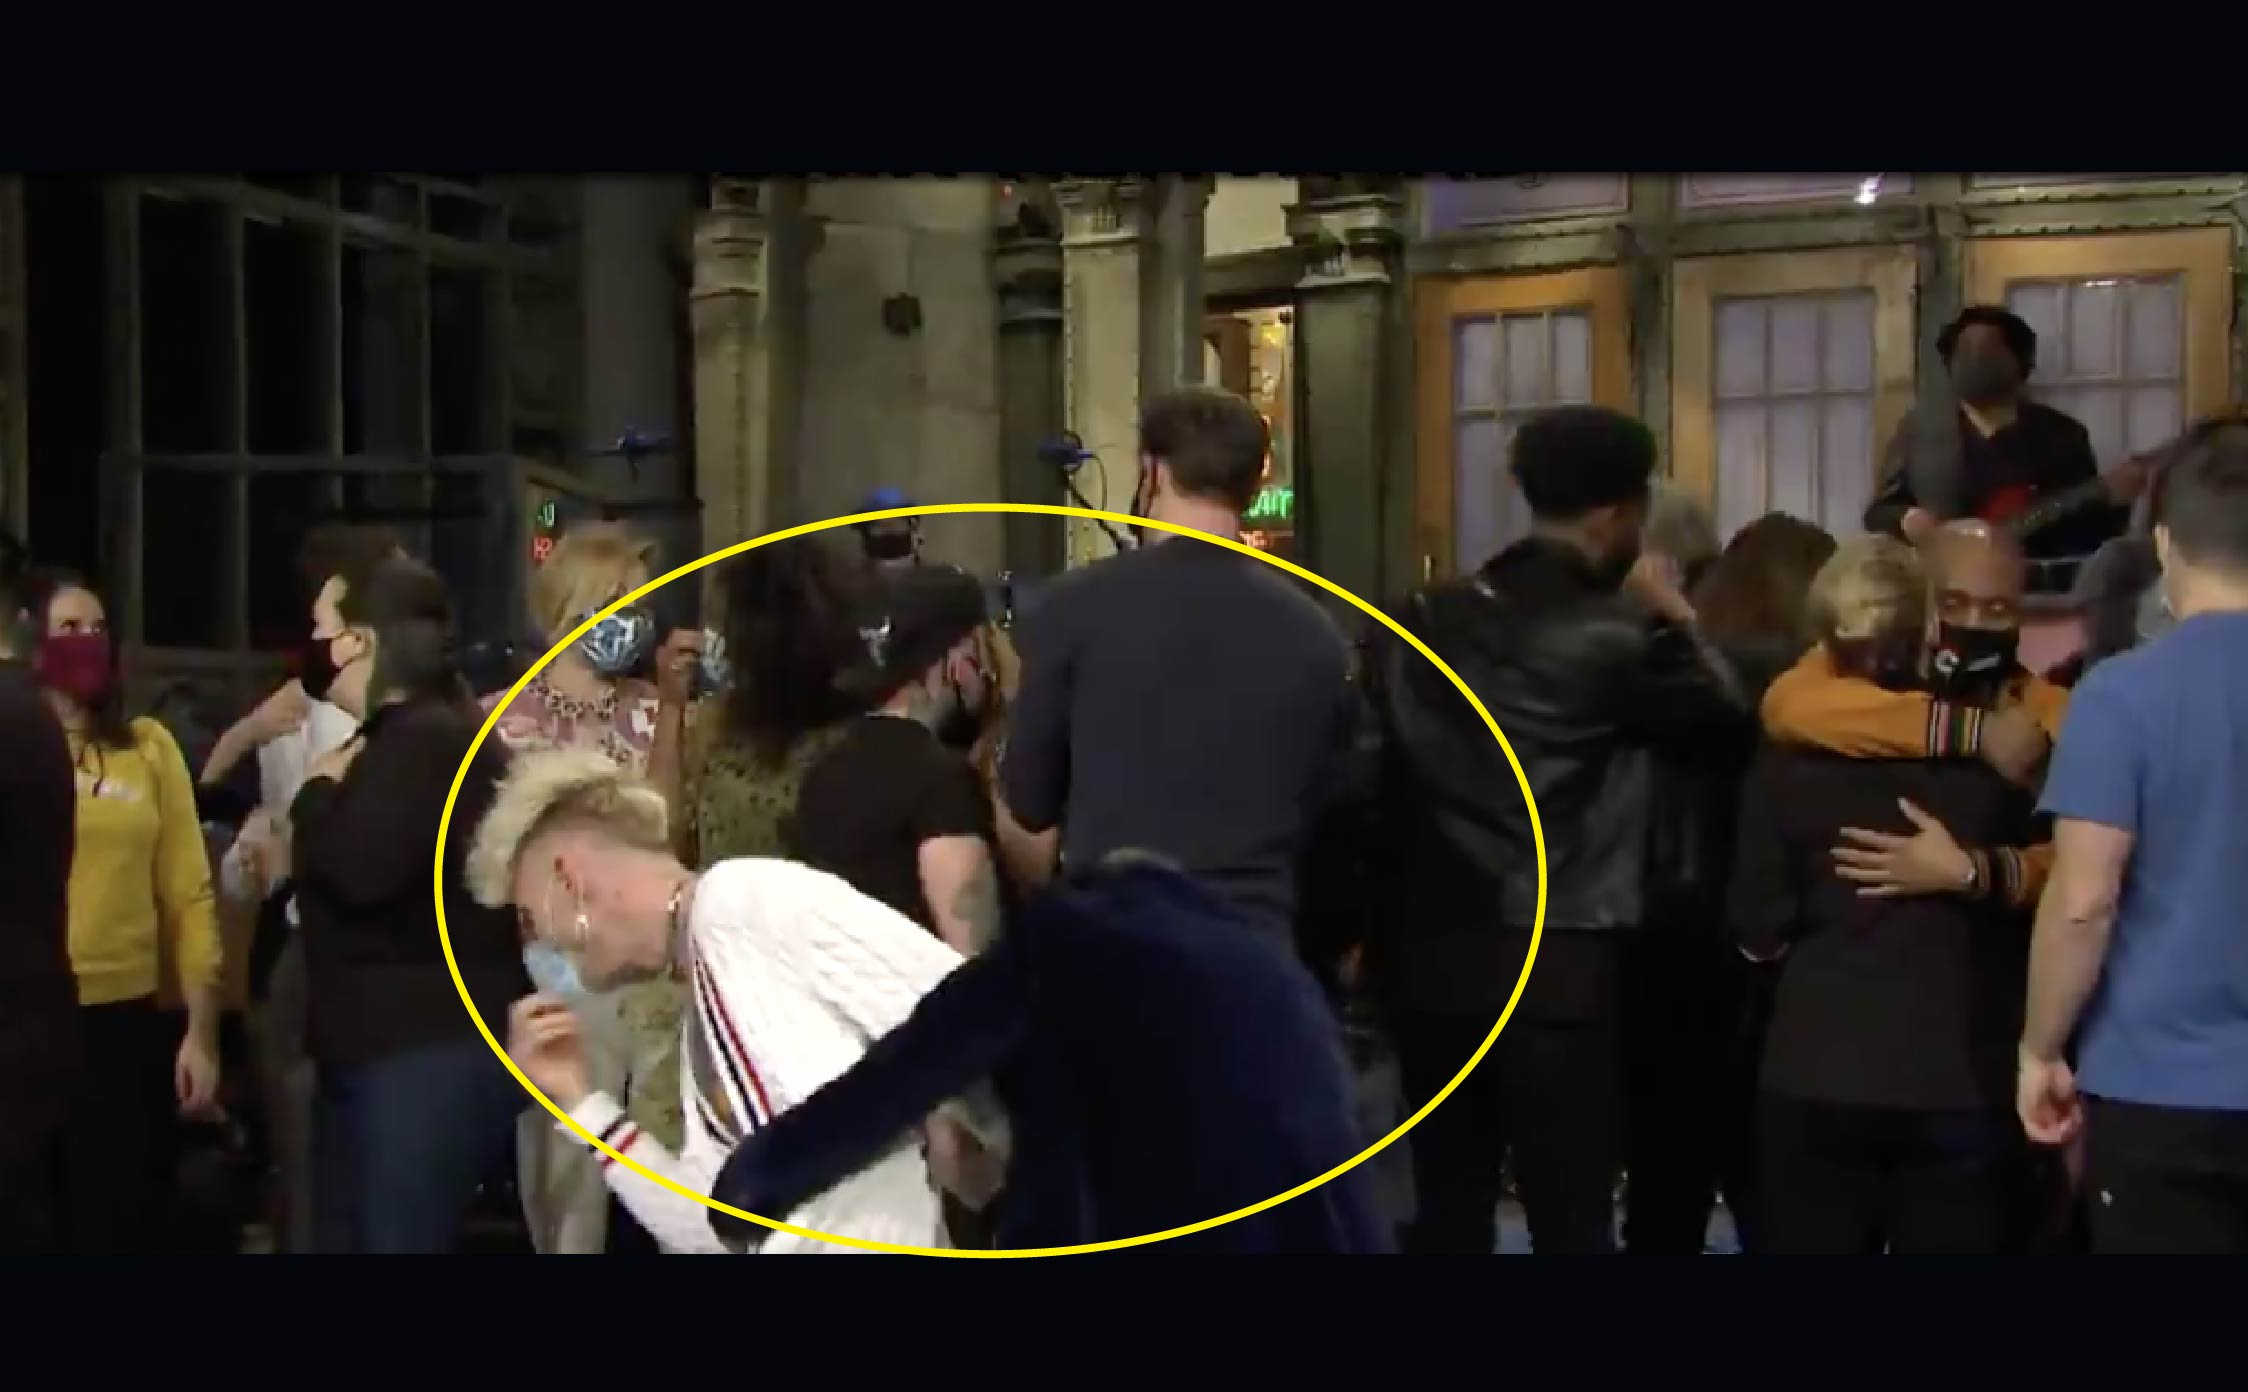 [VIDEO] SNL Finally Funny Again When Two Liberal Stars Accidentally Fall Off The Stage